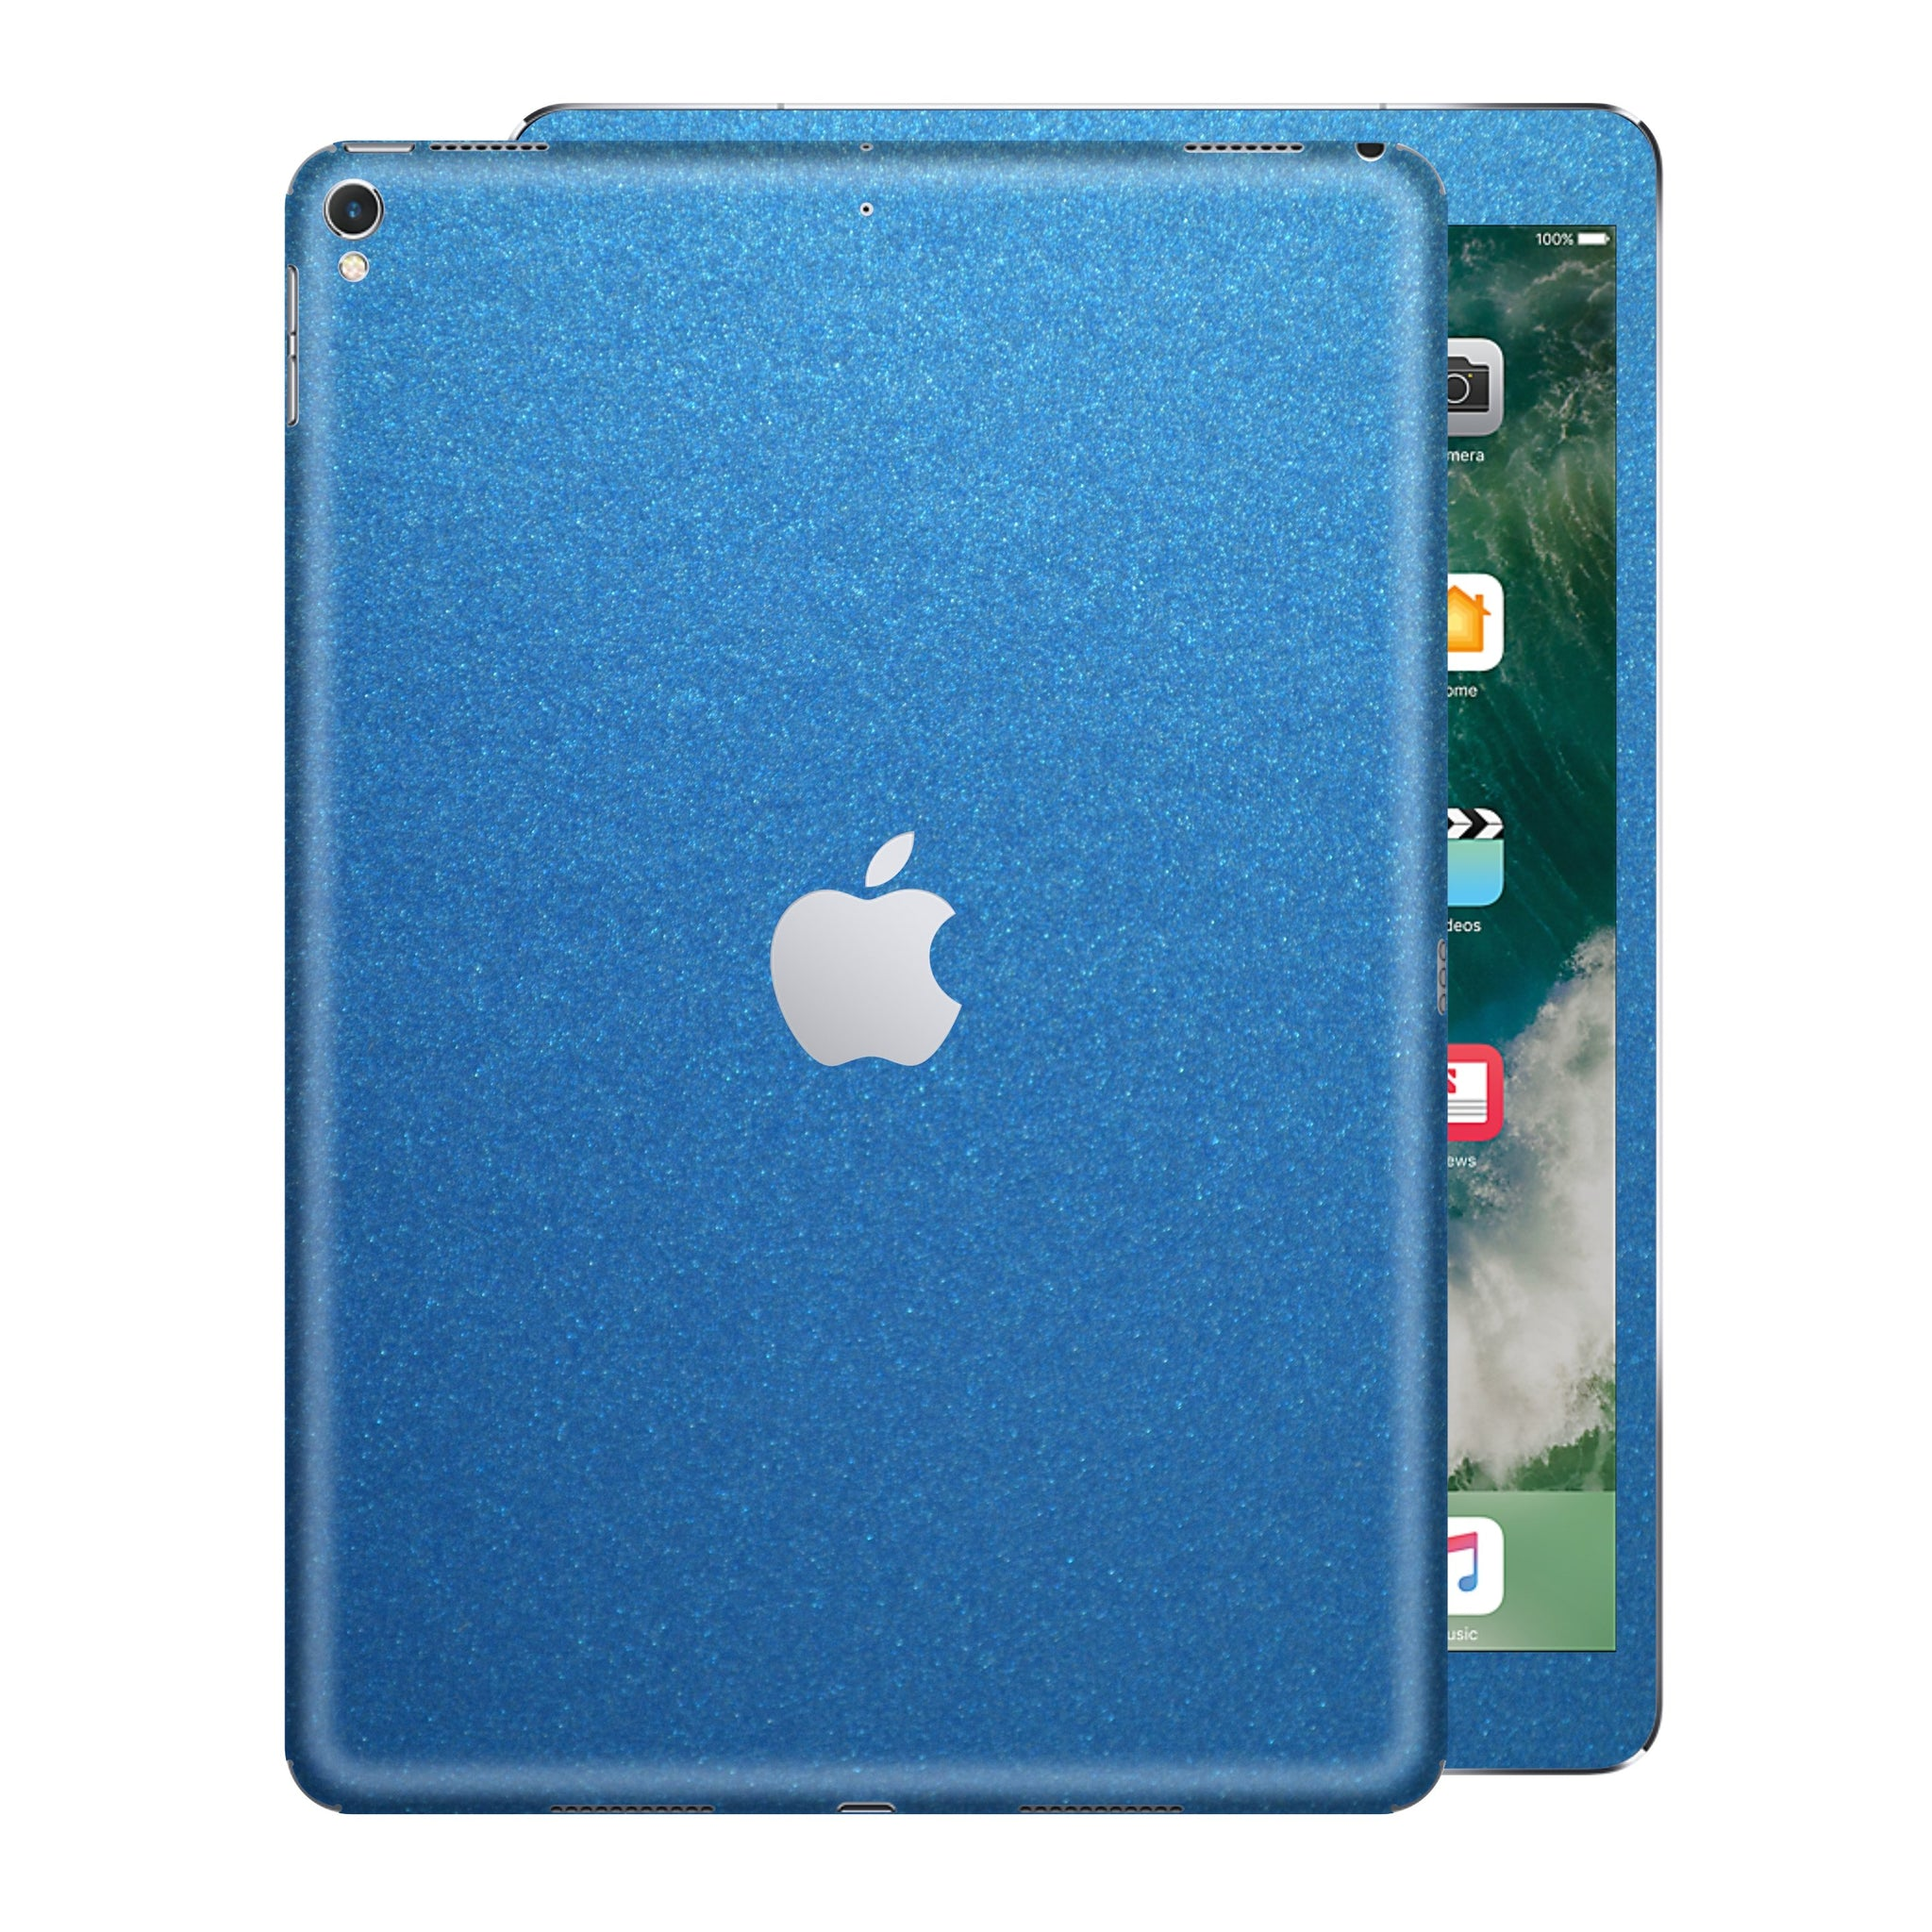 iPad PRO 10.5 inch 2017 Matt Matte Azure Blue Metallic Skin Wrap Sticker Decal Cover Protector by EasySkinz